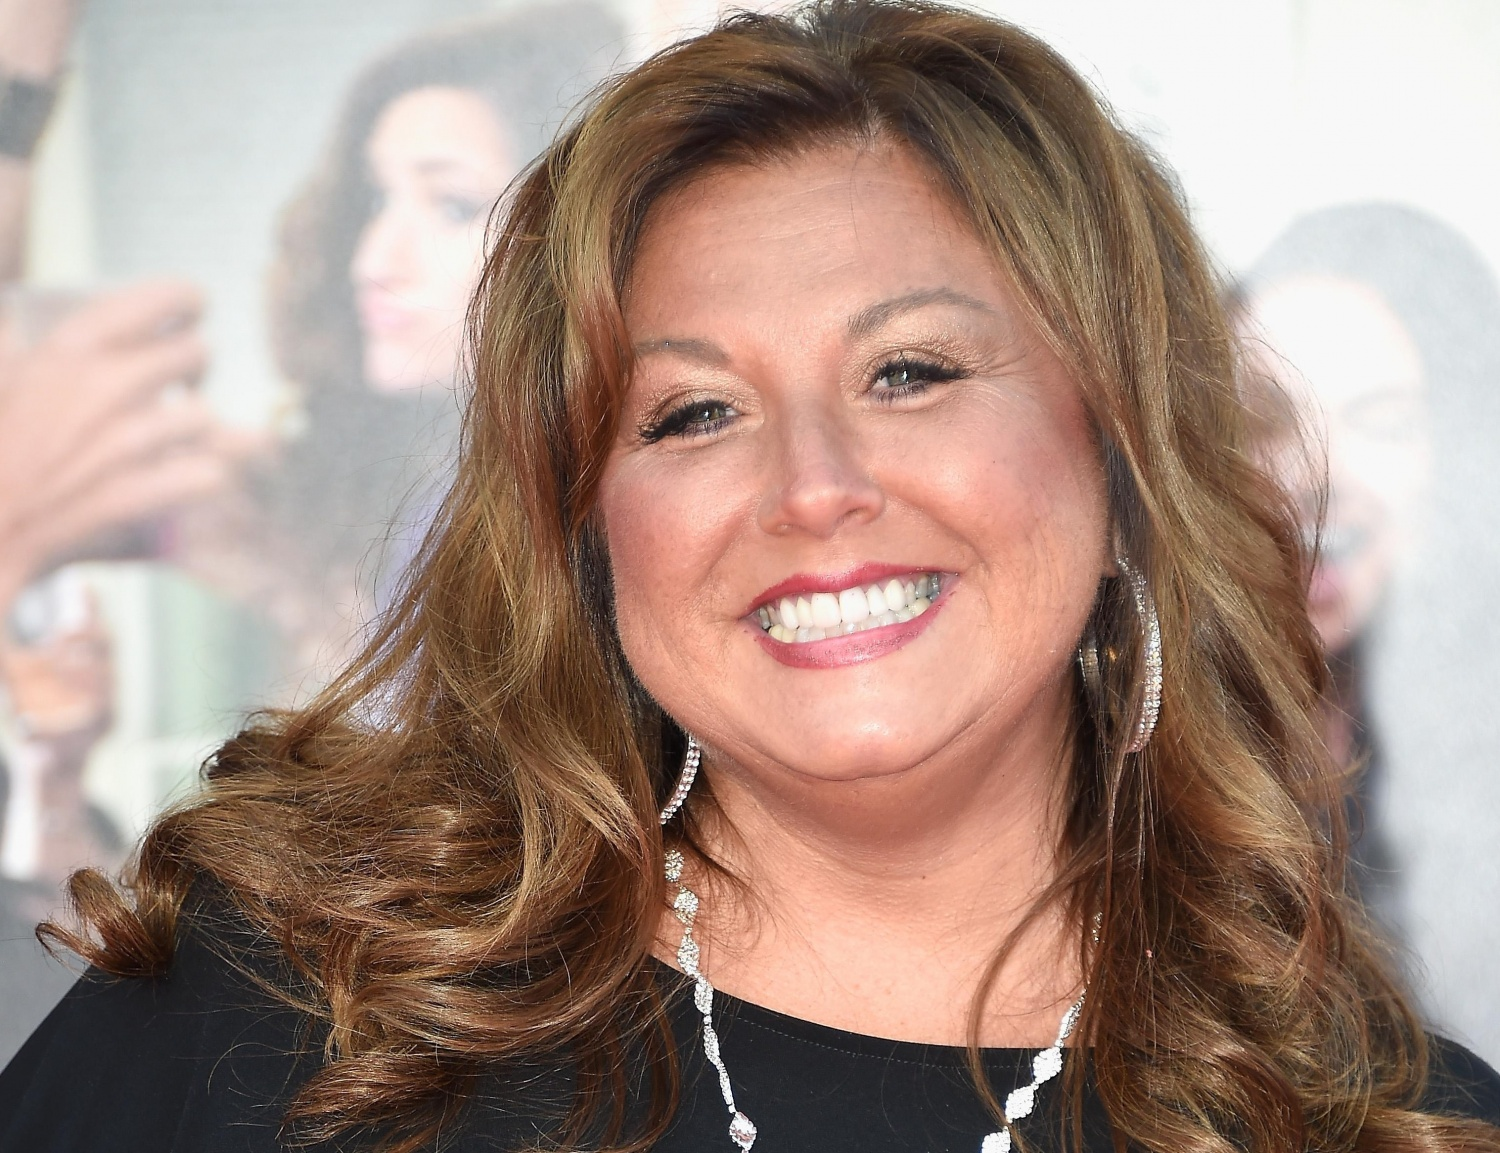 'Dance Moms' Star Abby Lee Miller Almost Died From Serious Spinal Infection